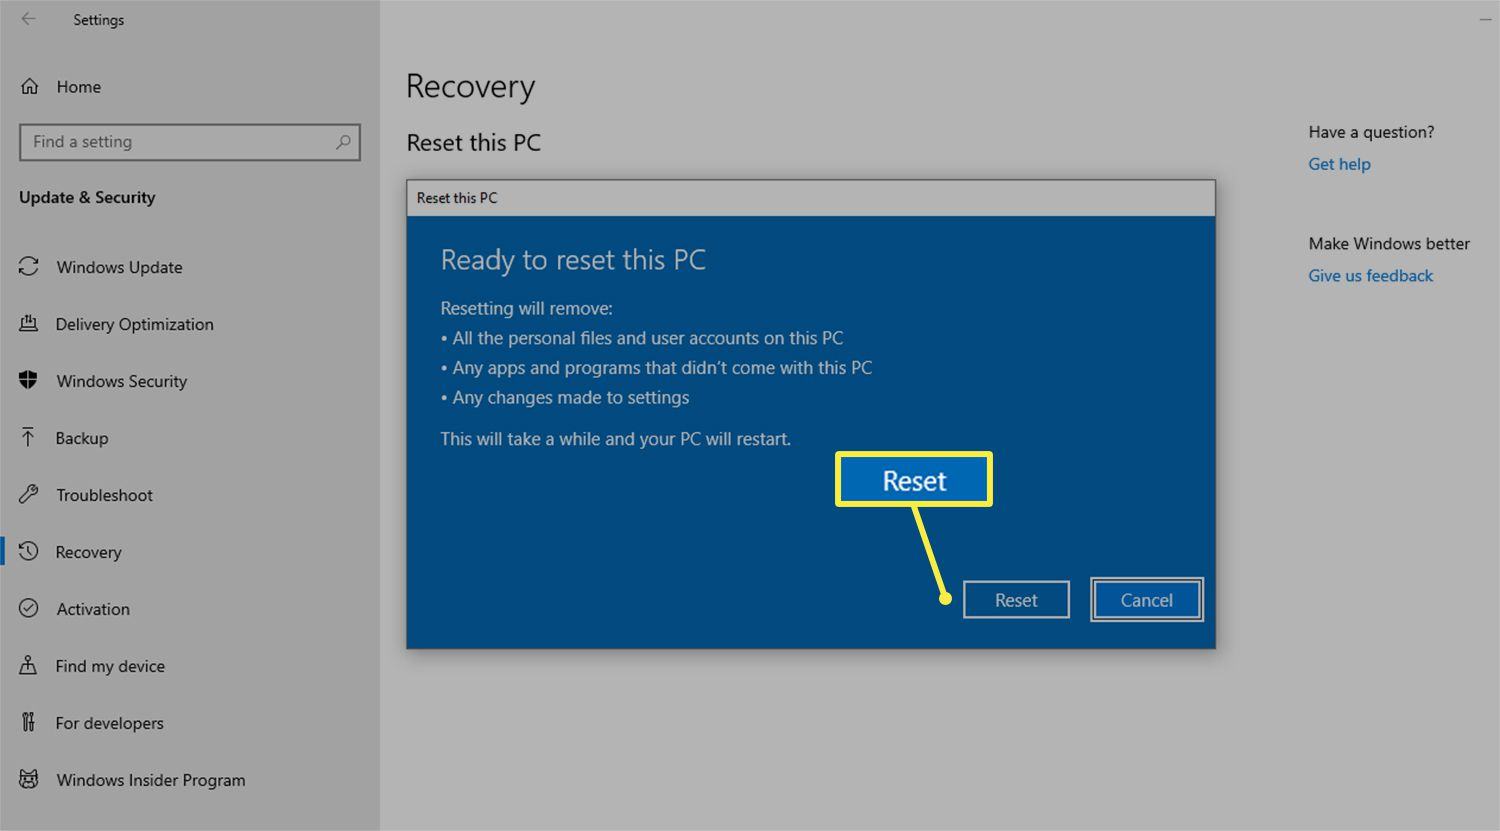 Reset button to factory reset a PC running on Windows 10